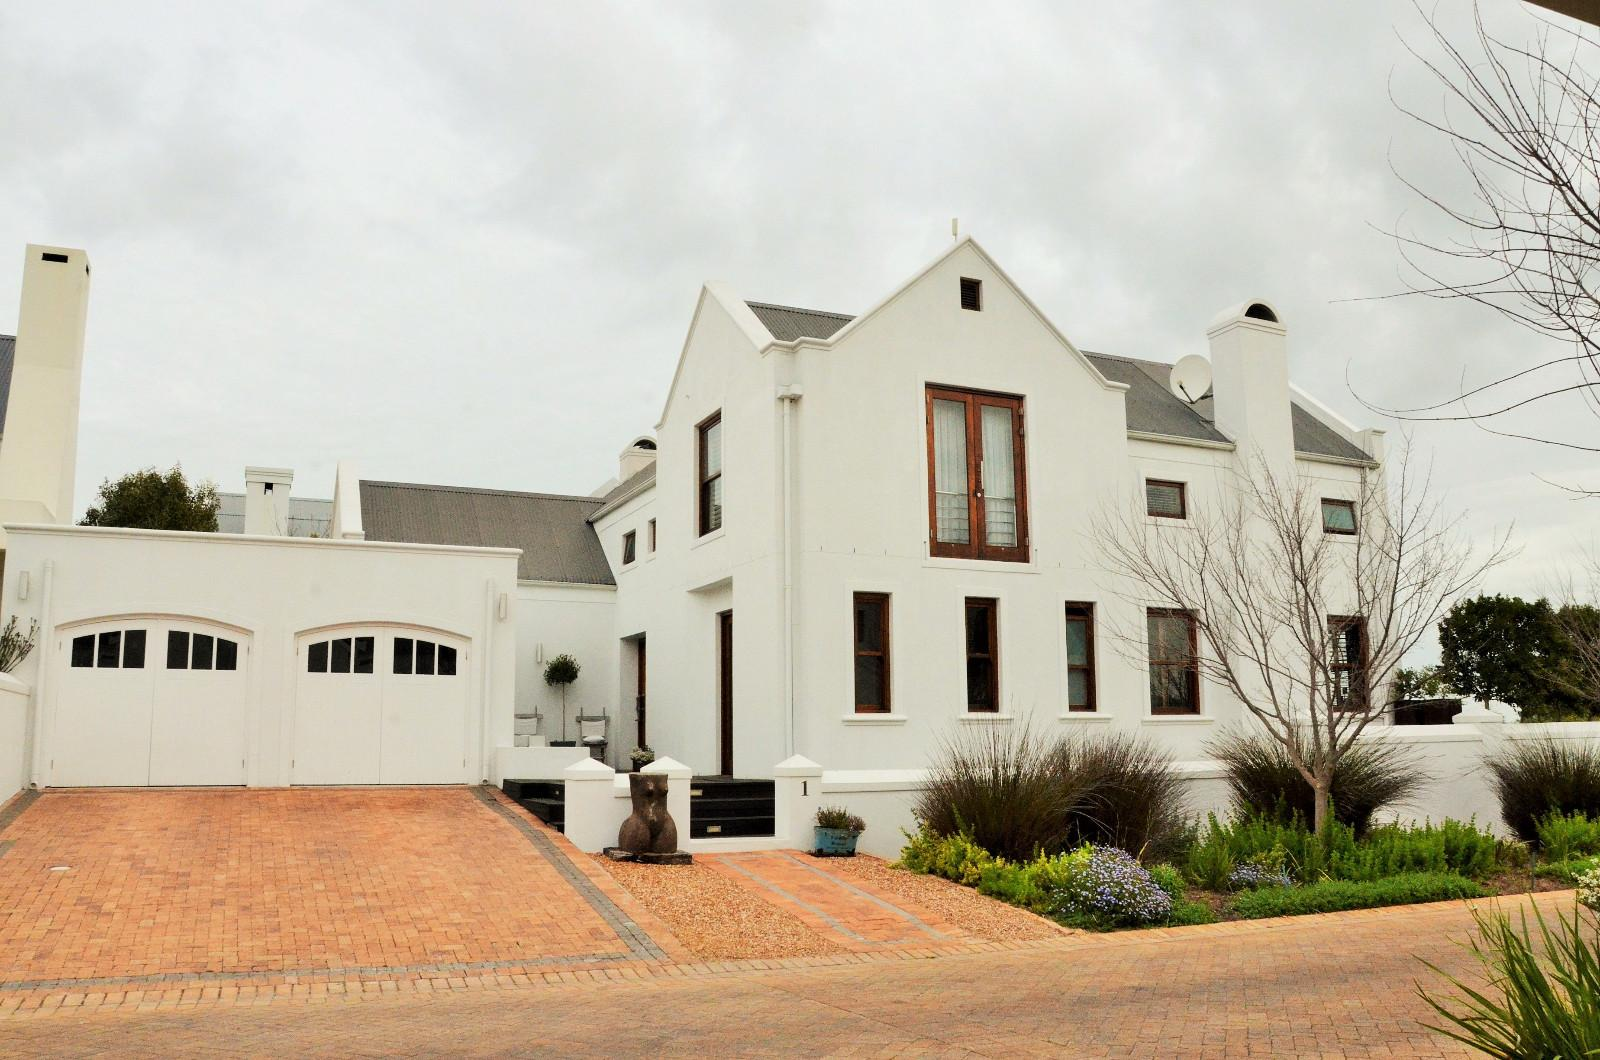 Stellenbosch, De Zalze Winelands Golf Estate Property  | Houses For Sale De Zalze Winelands Golf Estate, DE ZALZE WINELANDS GOLF ESTATE, House 3 bedrooms property for sale Price:10,500,000